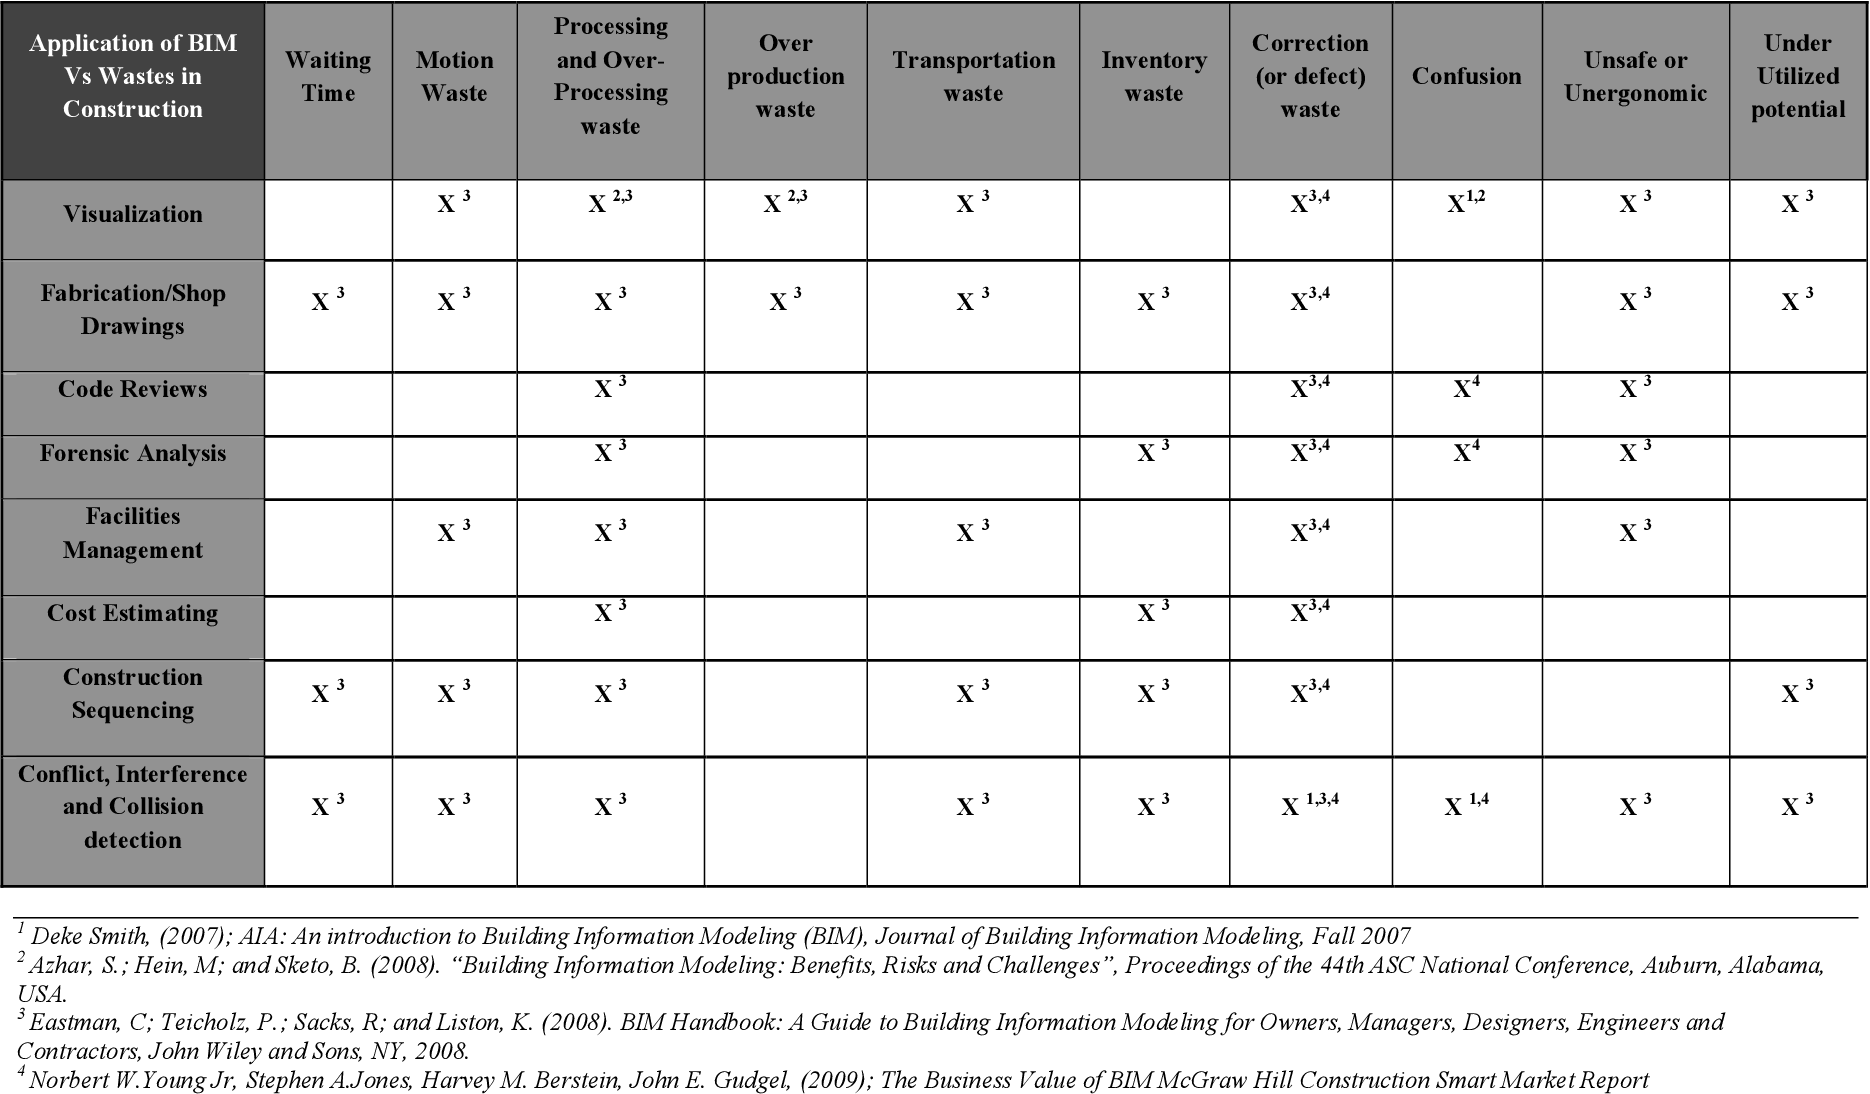 Table 4 from Use of Lean and Building Information Modeling